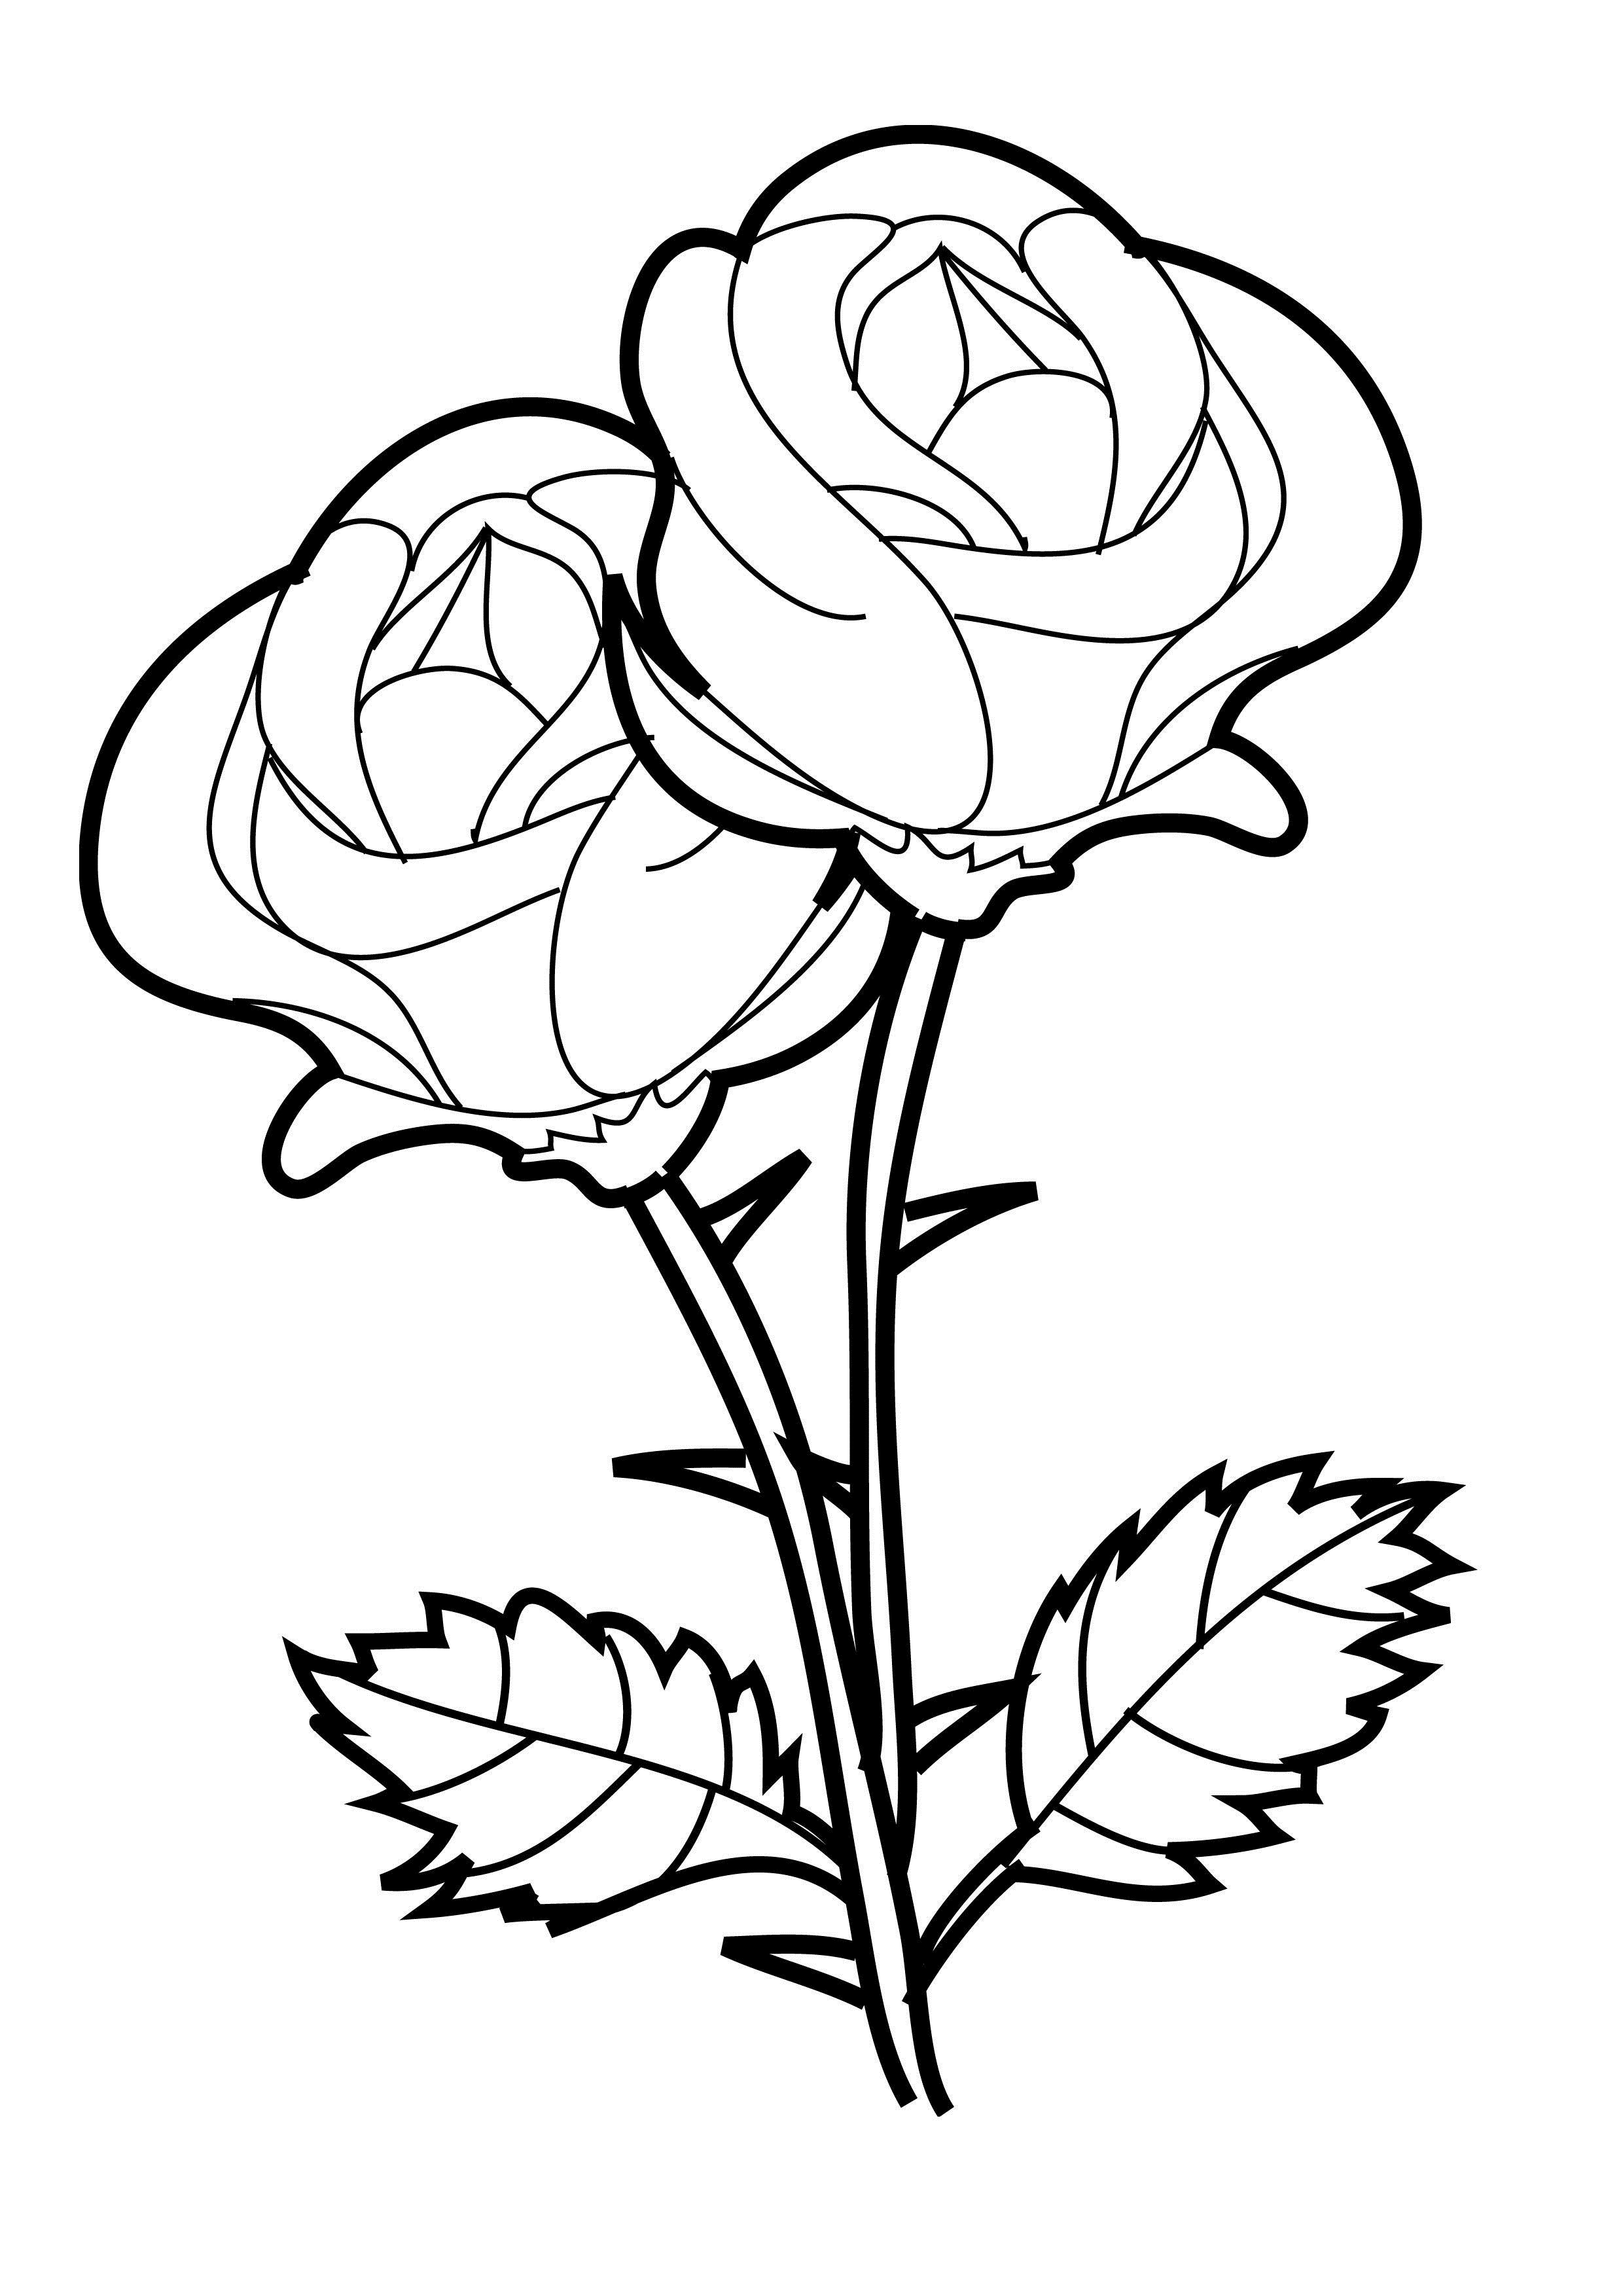 Rose Vines Drawings Clipart Best Special Coloring Pages Draw A